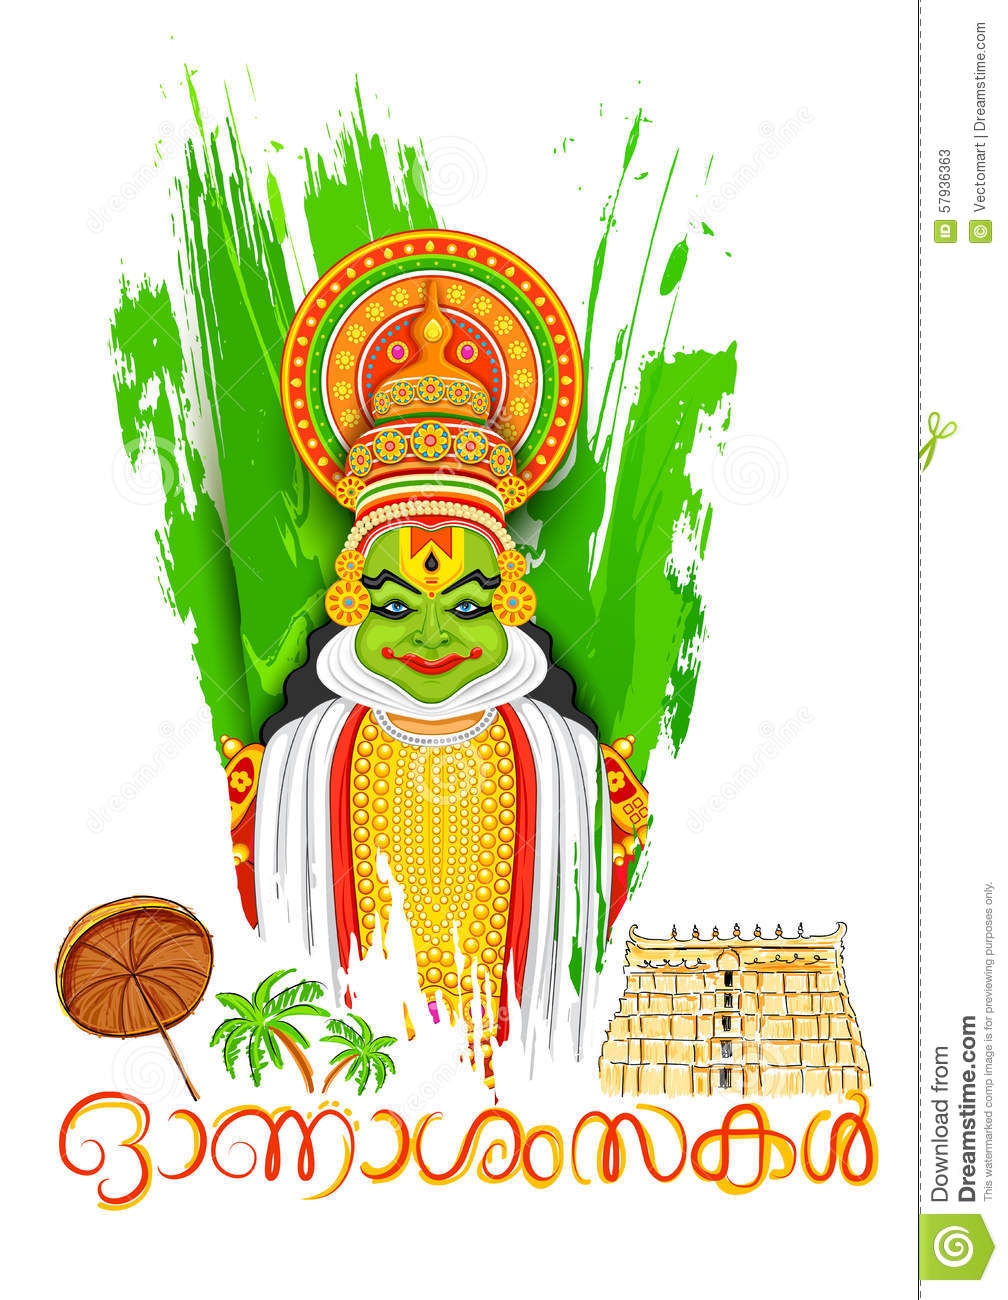 kathakali cartoons pictures illustrations - photo #9